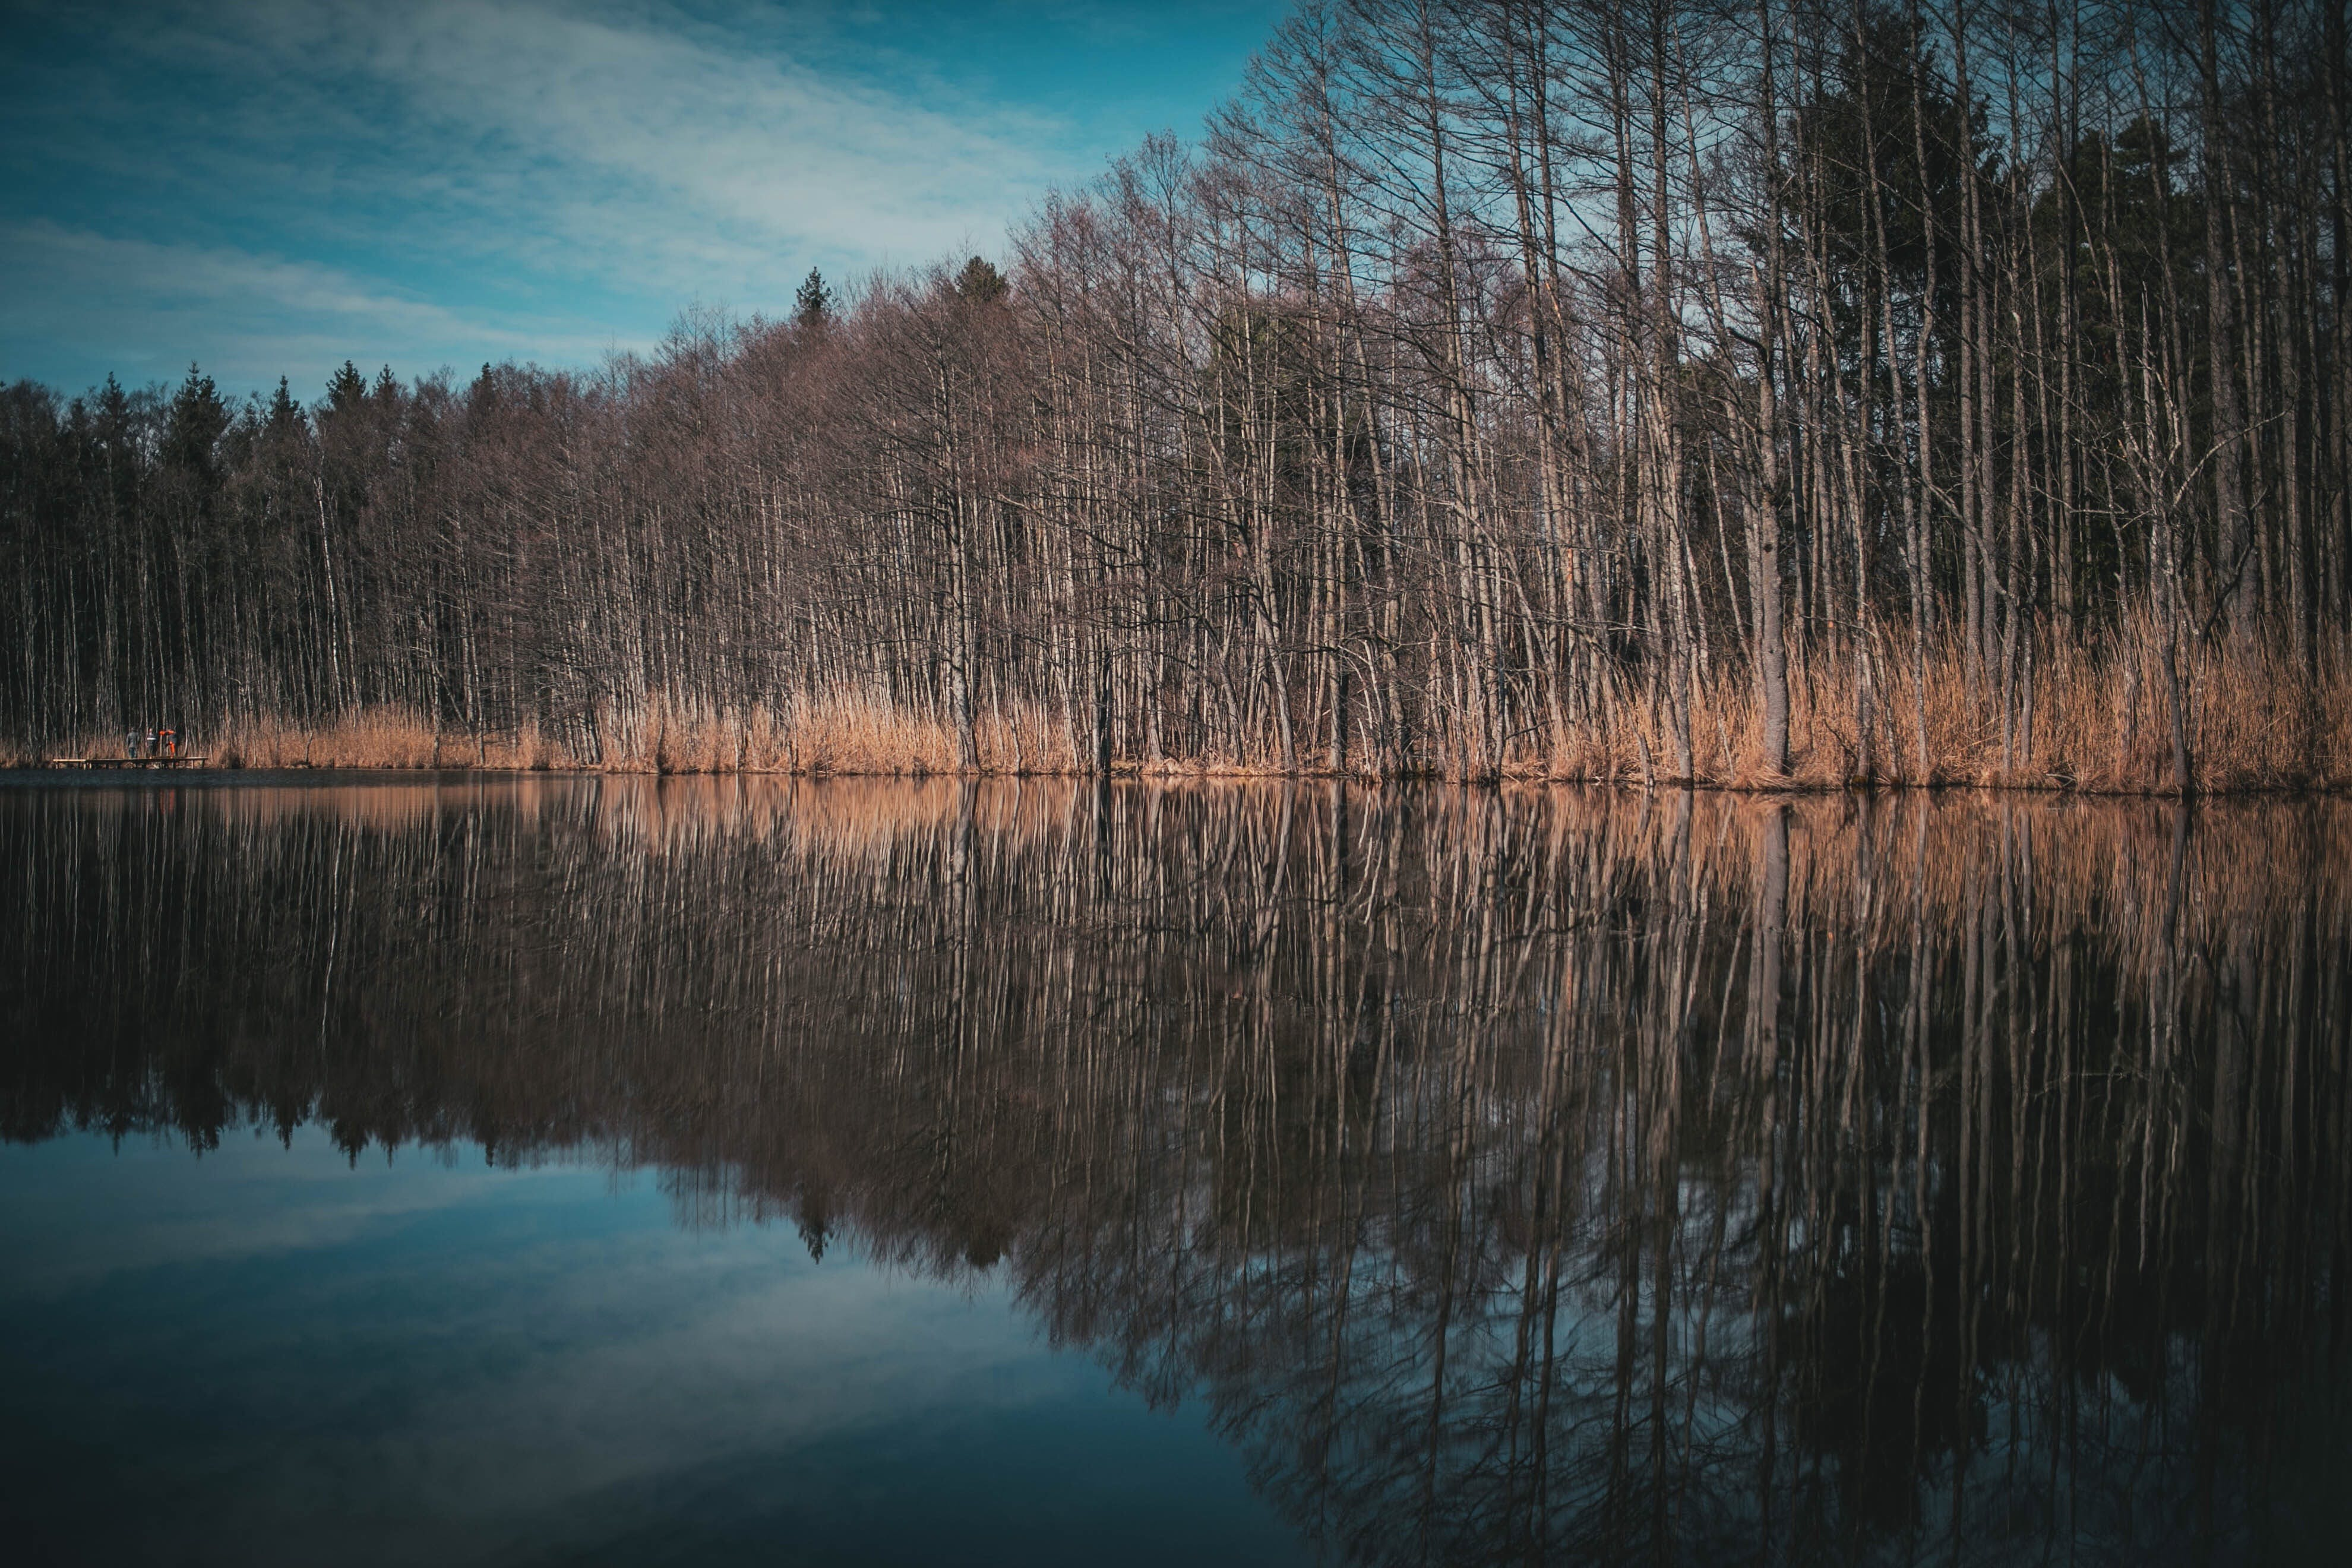 Photo of Leafless Trees With Reflection on Body of Water